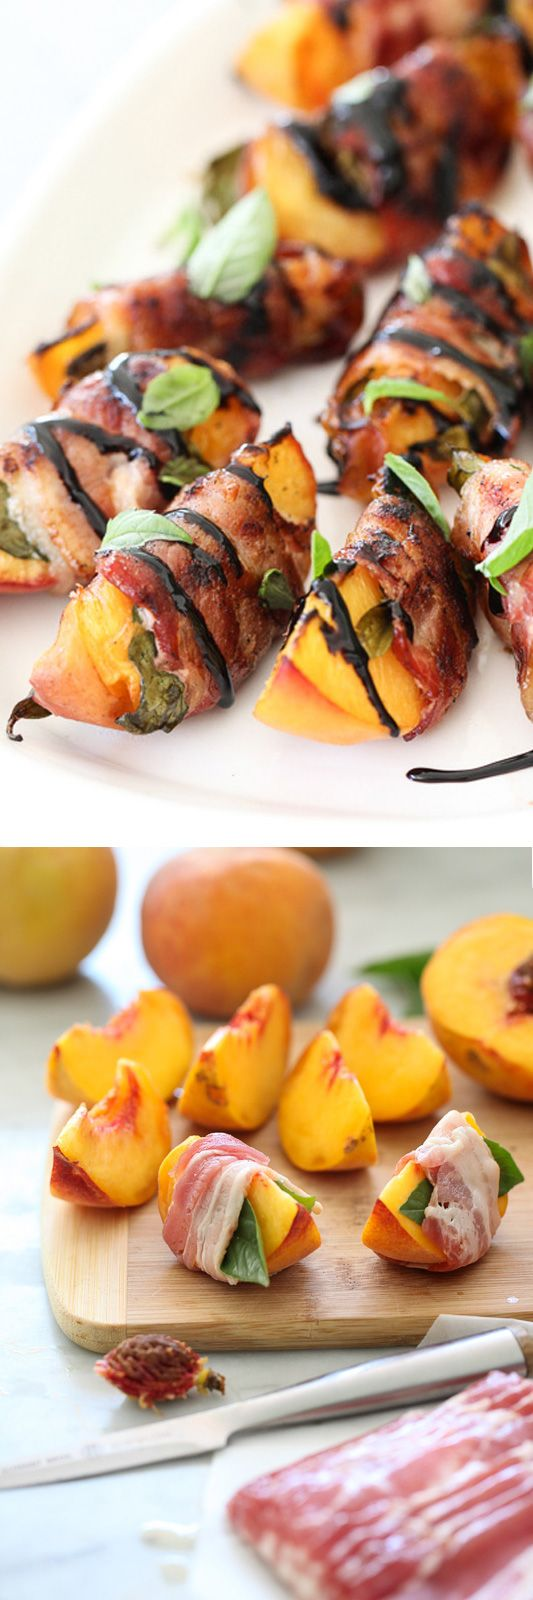 Salty bacon amps up the sweetness of local peaches at their peak freshness and…